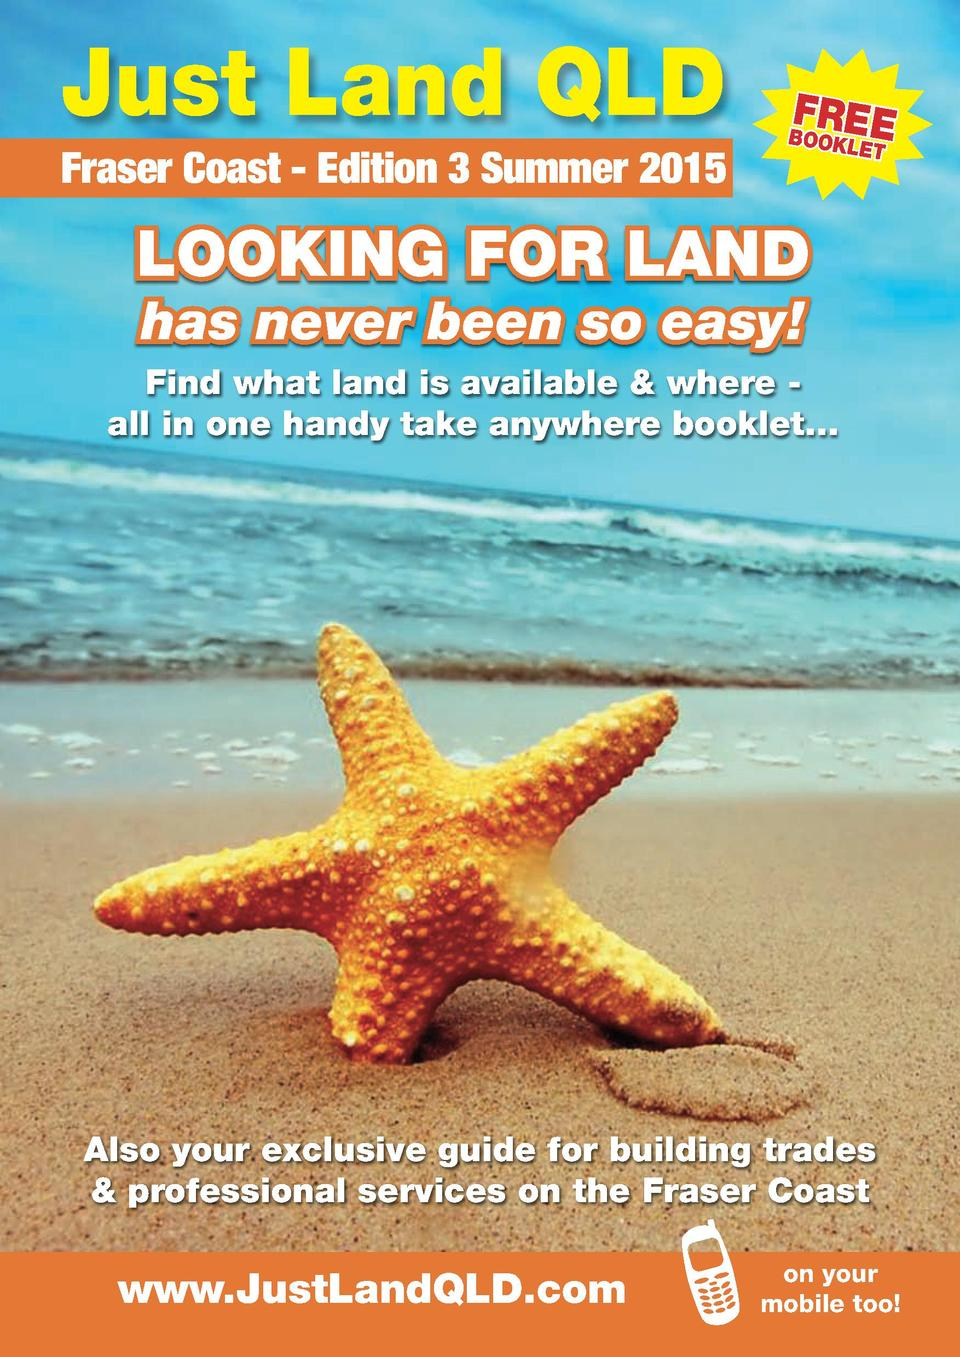 Just Land QLD Fraser Coast - Edition 3 Summer 2015  FREE  BOOKL  ET  LOOKING FOR LAND has never been so easy   Find what l...